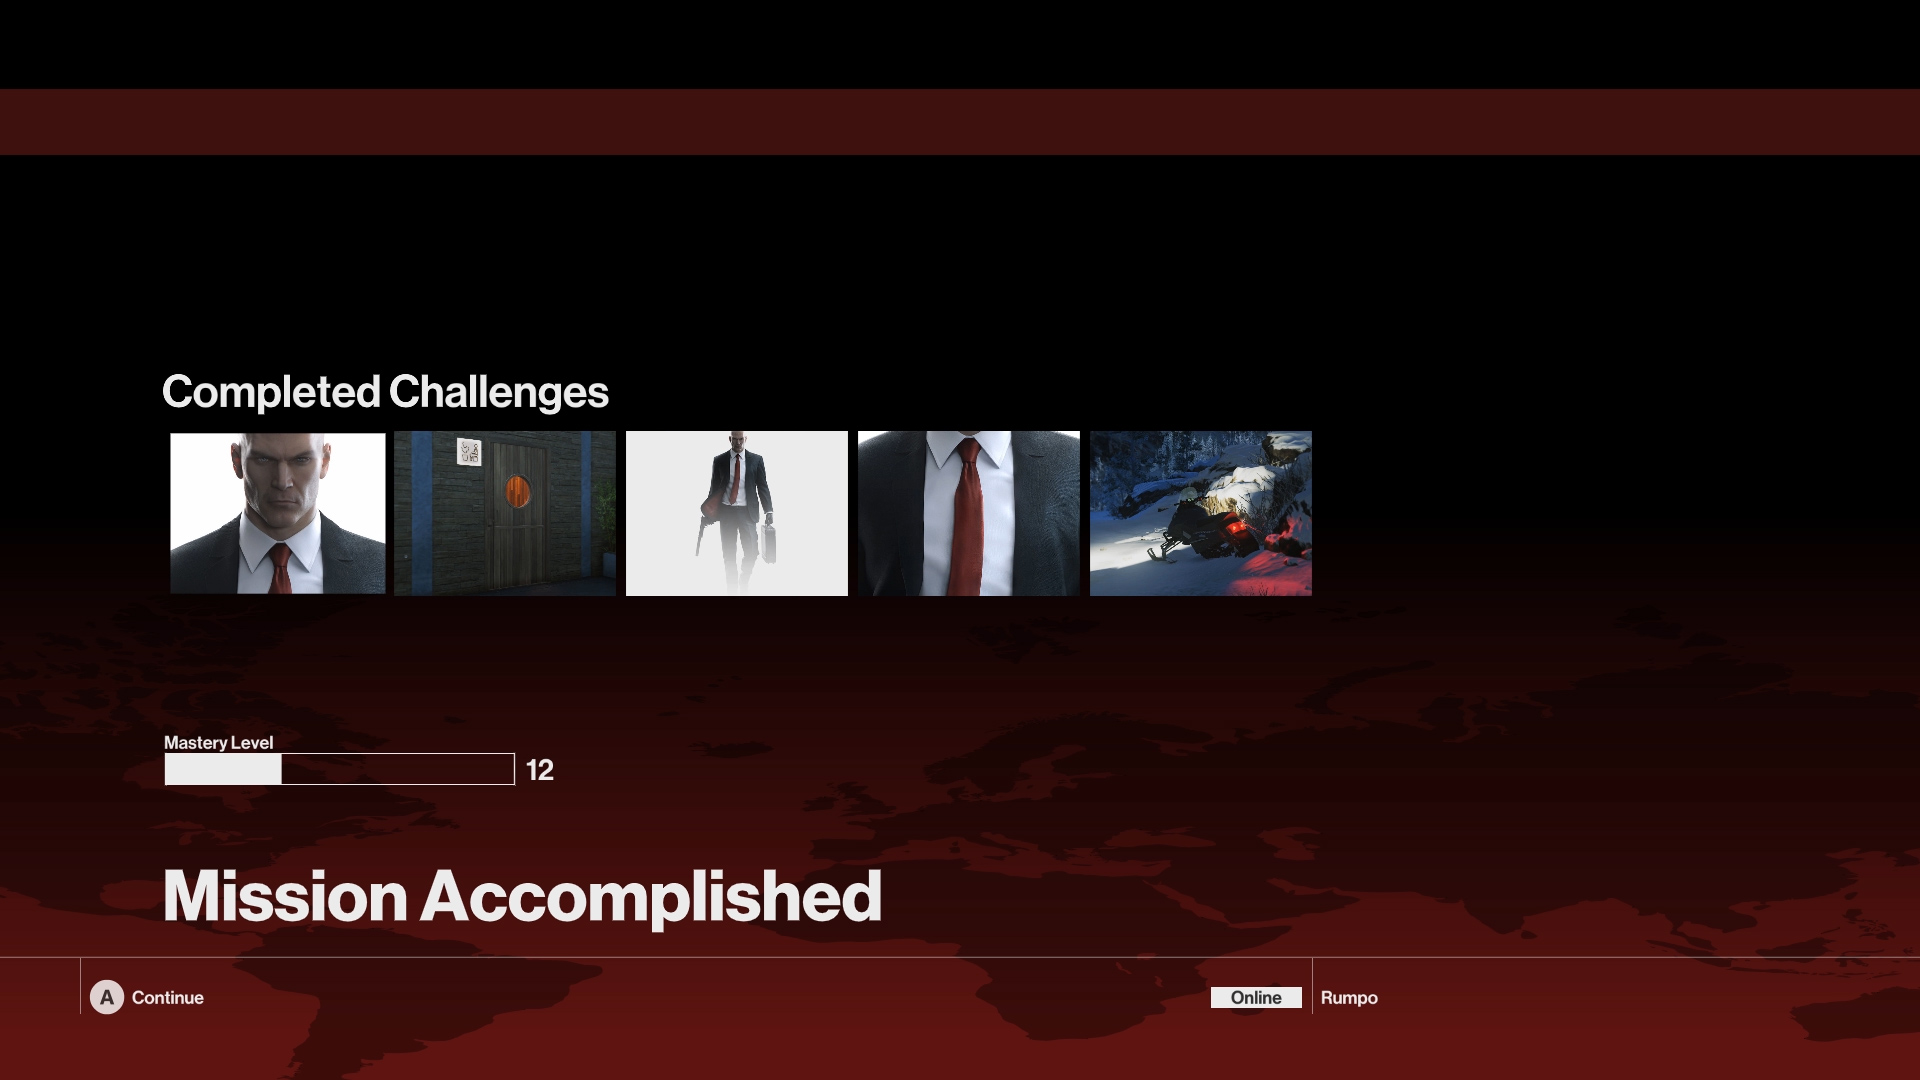 If you followed this guide, you should have completed Silent Assassin, Suit Only in about 4 minutes and 30 seconds.